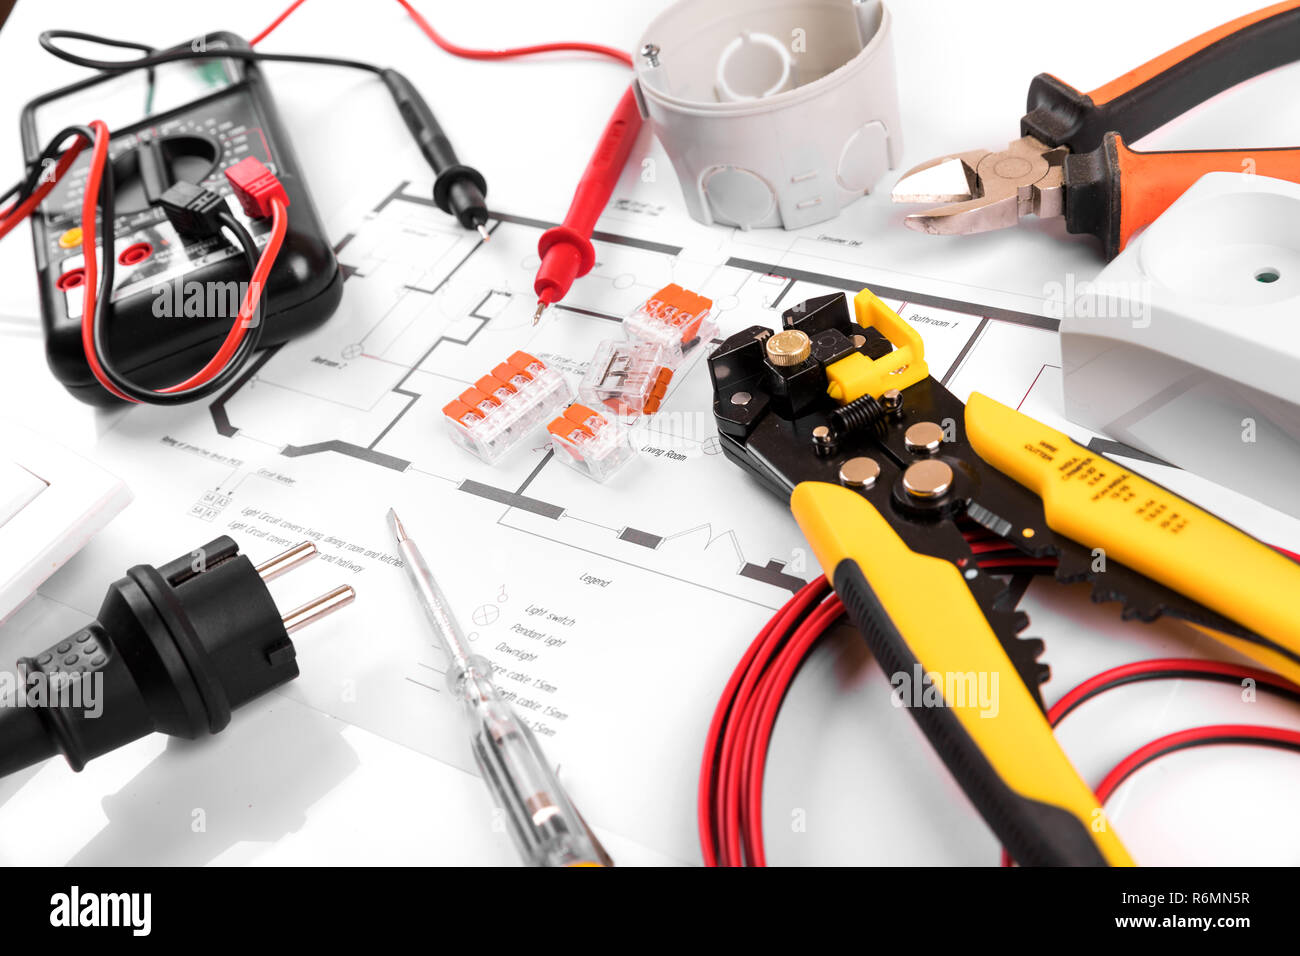 Electrical Tools And Equipment On House Circuit Diagram Stock